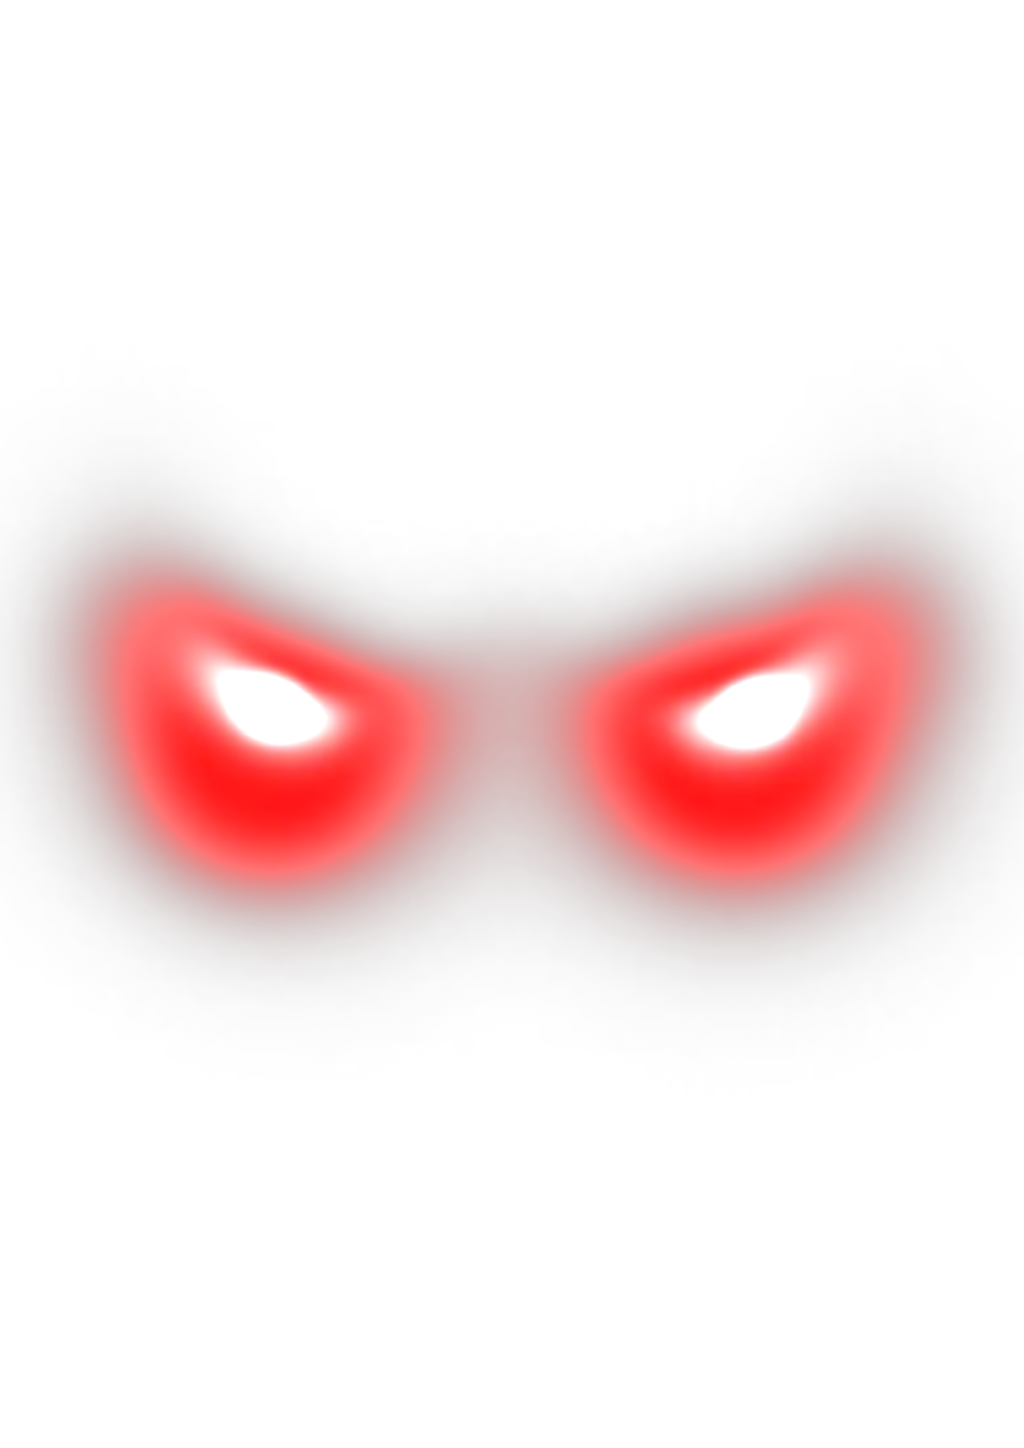 Laser eye meme png. Glowing eyes images in